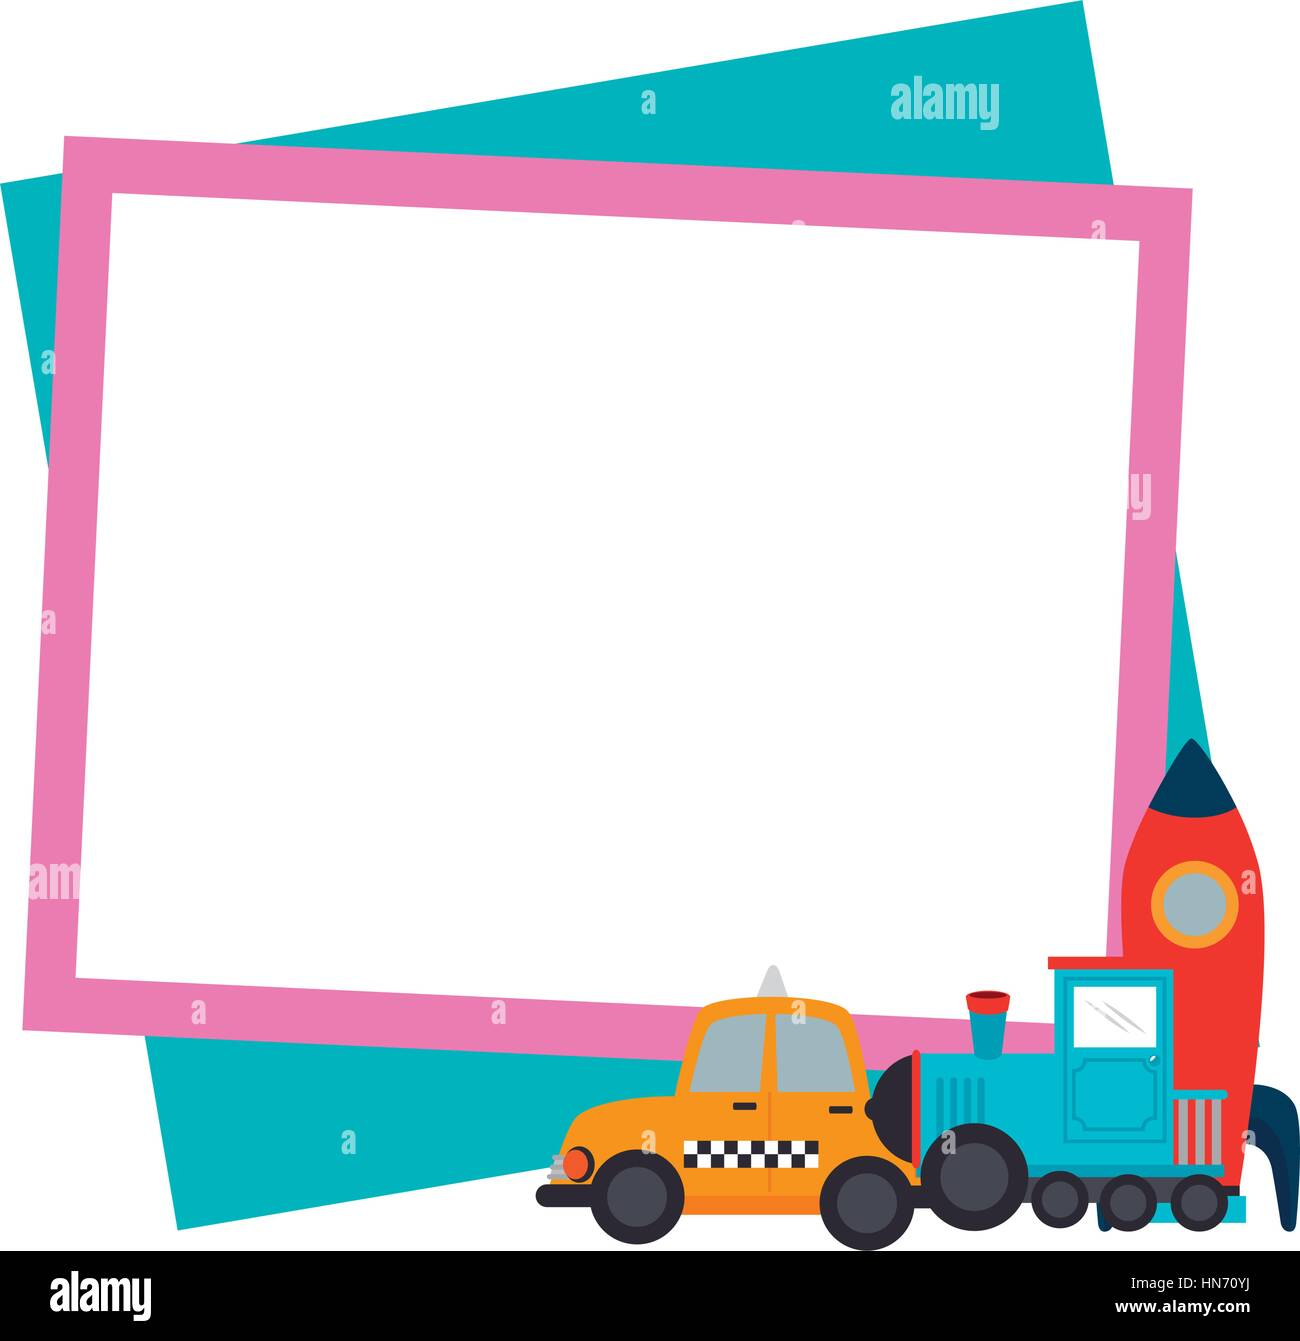 Color Frame With Border With Baby Toys Vector Illustration Stock